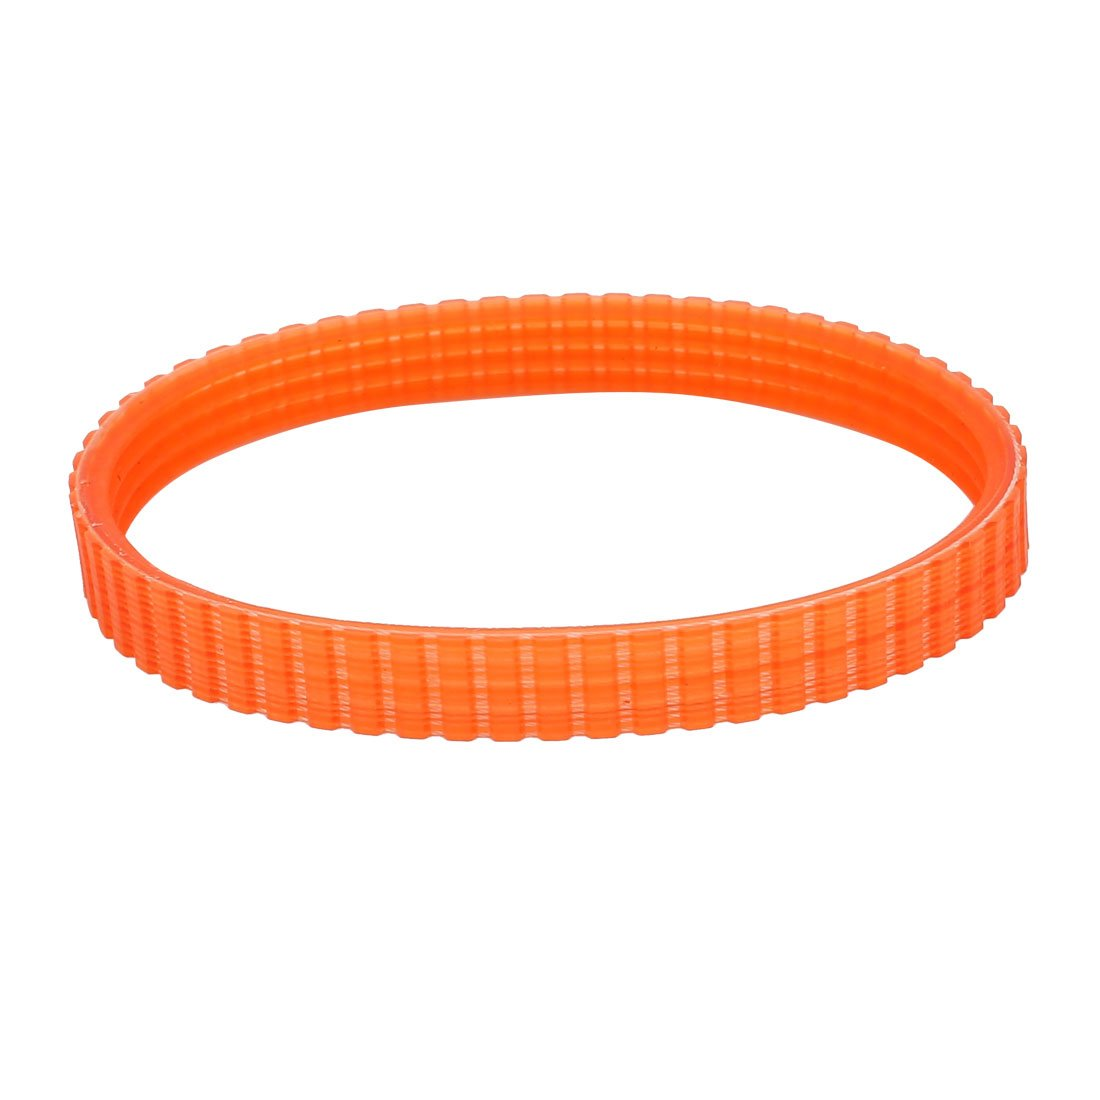 uxcell 10mm Wide 220mm Inner Girth Electric Planer Part Drive Belt Band Apricot for Makita 1900B